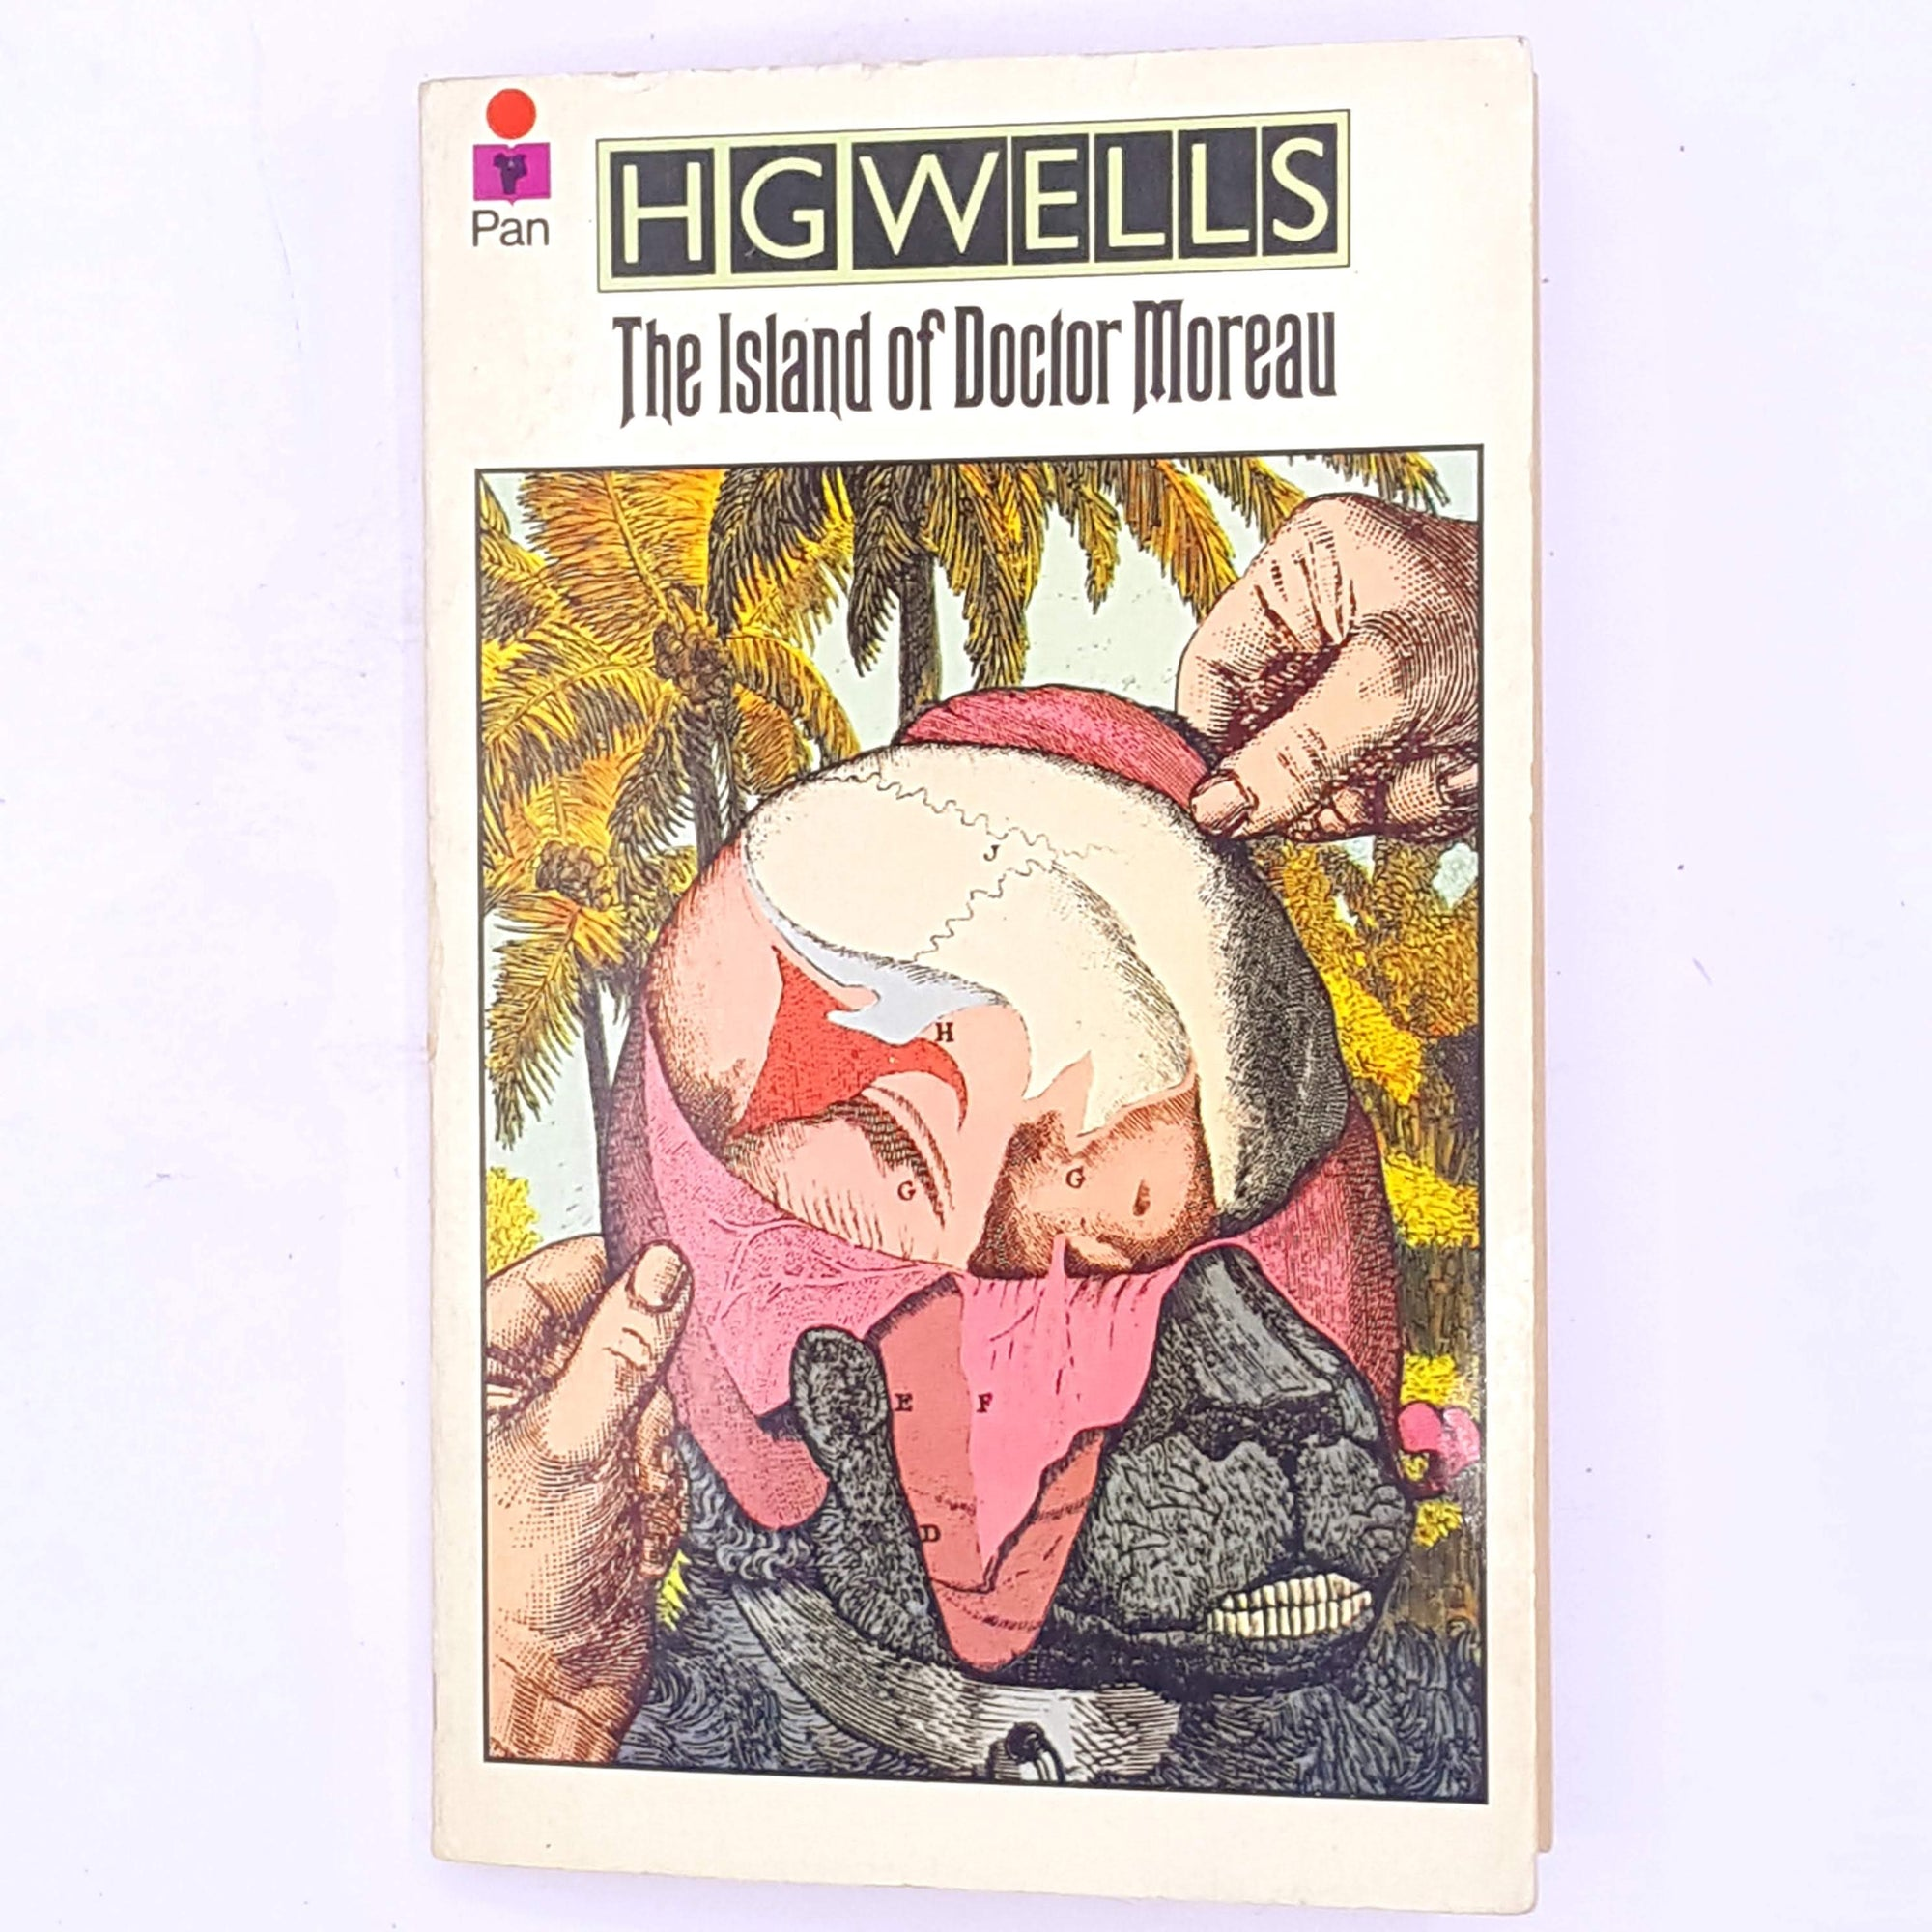 old-horror-books-vintage-classic-thriller-patterned-science-fictions-H.G.-Wells-The-Island-Of-Doctor-Moreau-decorative-thrift-antique-country-house-library-